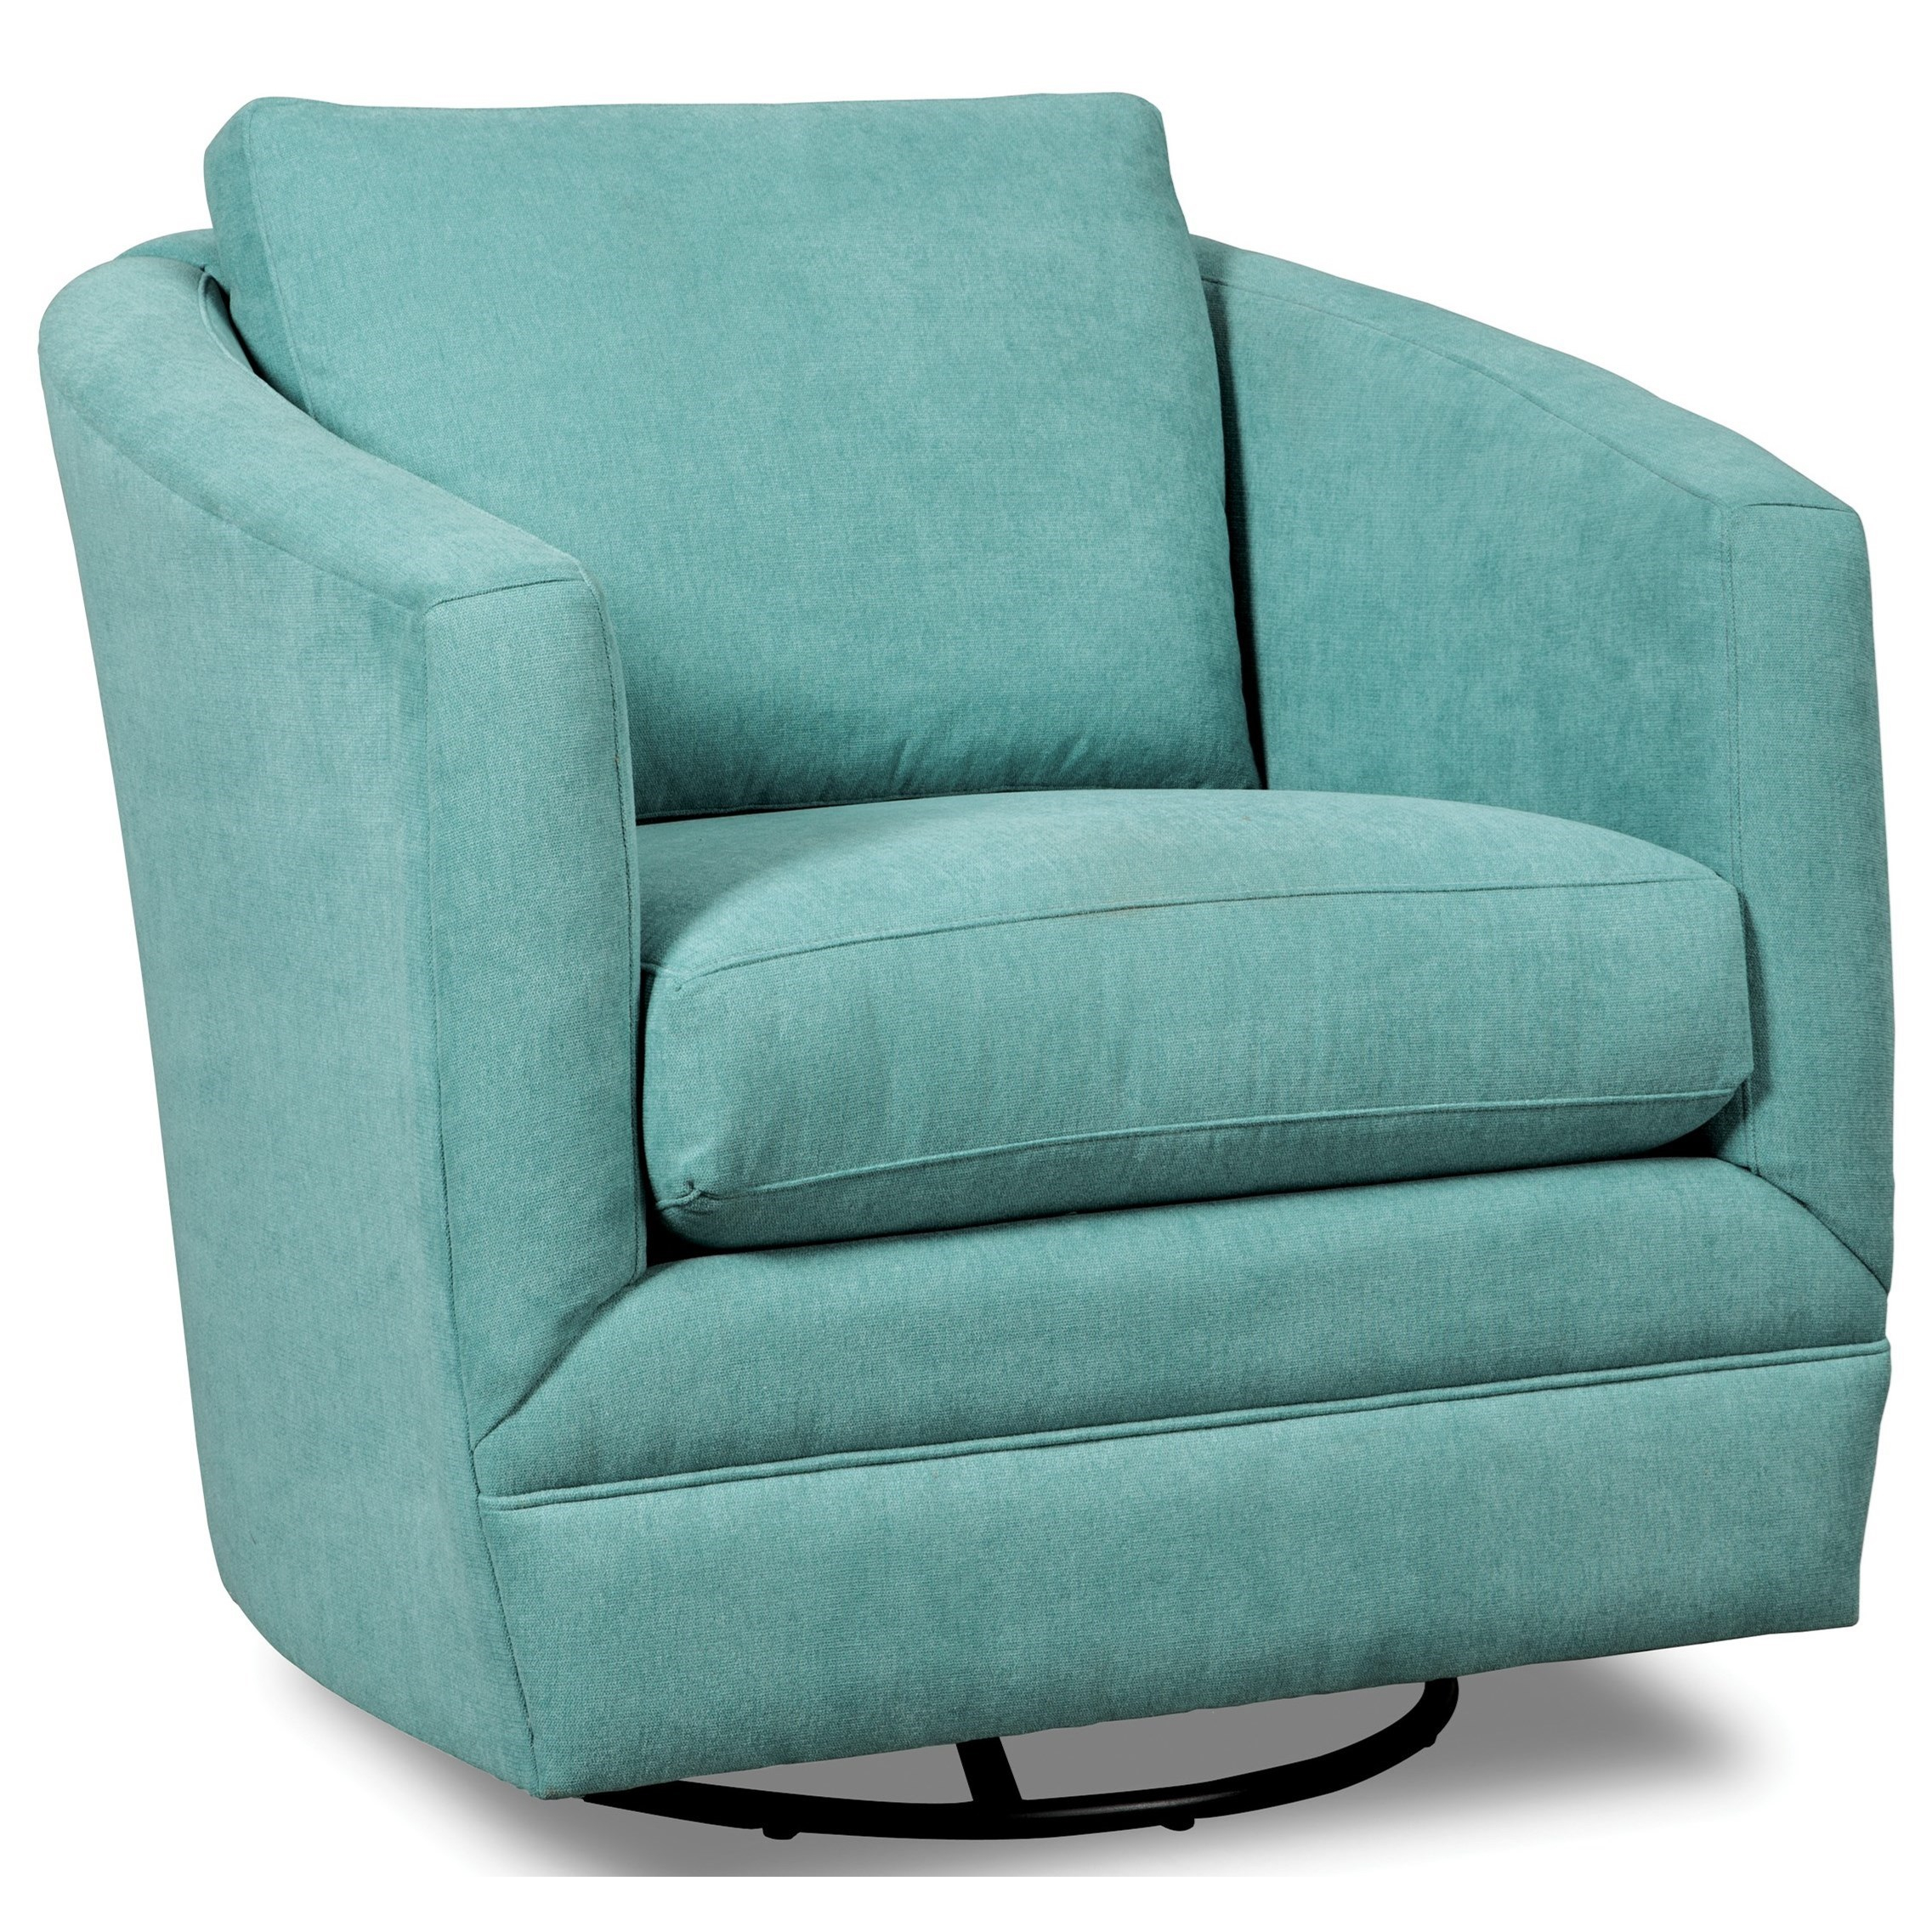 Accent Chairs Swivel Barrel Chair | Stoney Creek Furniture Pertaining To Umber Grey Swivel Accent Chairs (View 8 of 20)